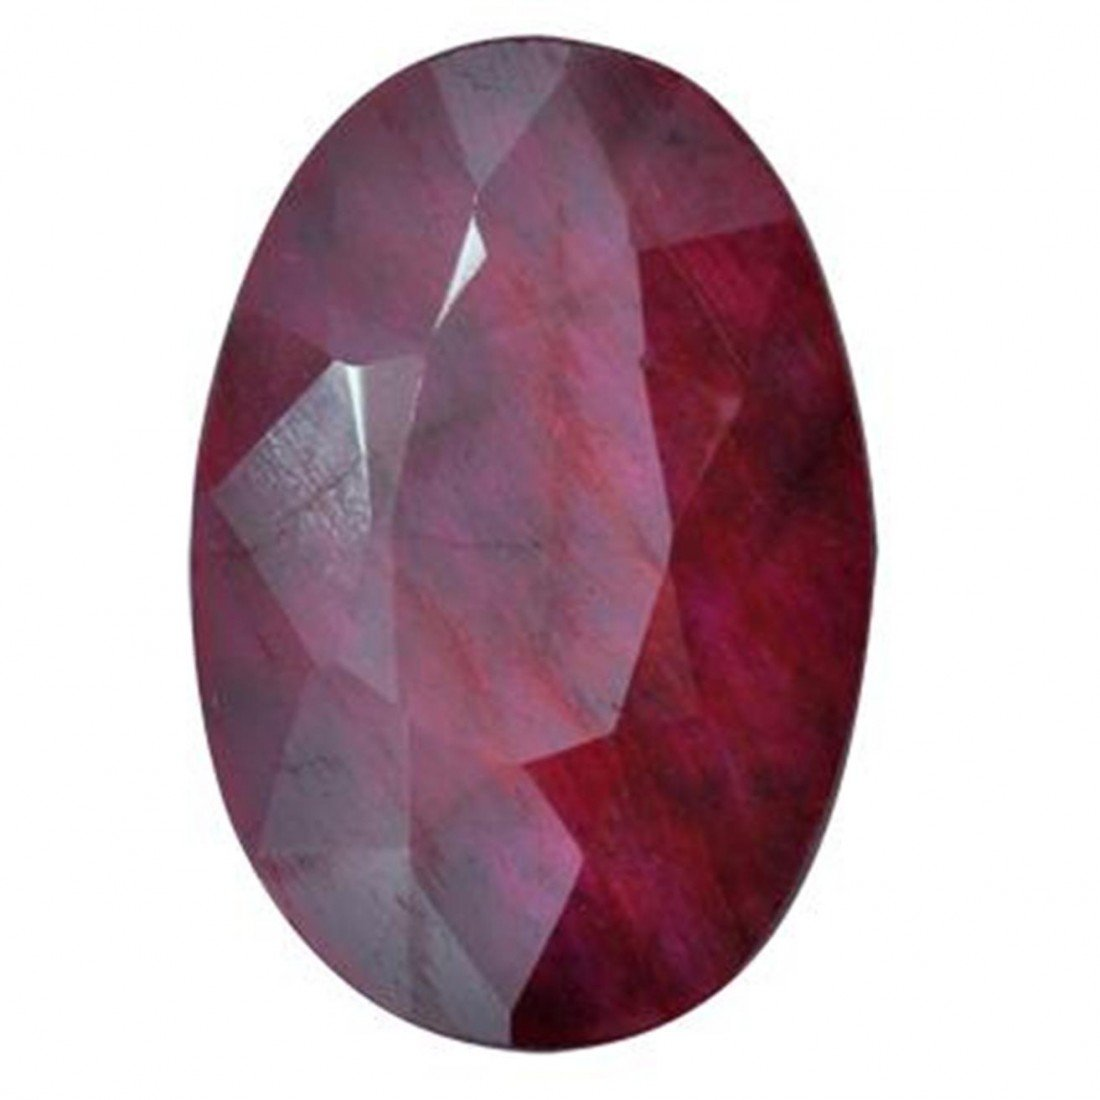 2Q: A 1 ct. Ruby Gem